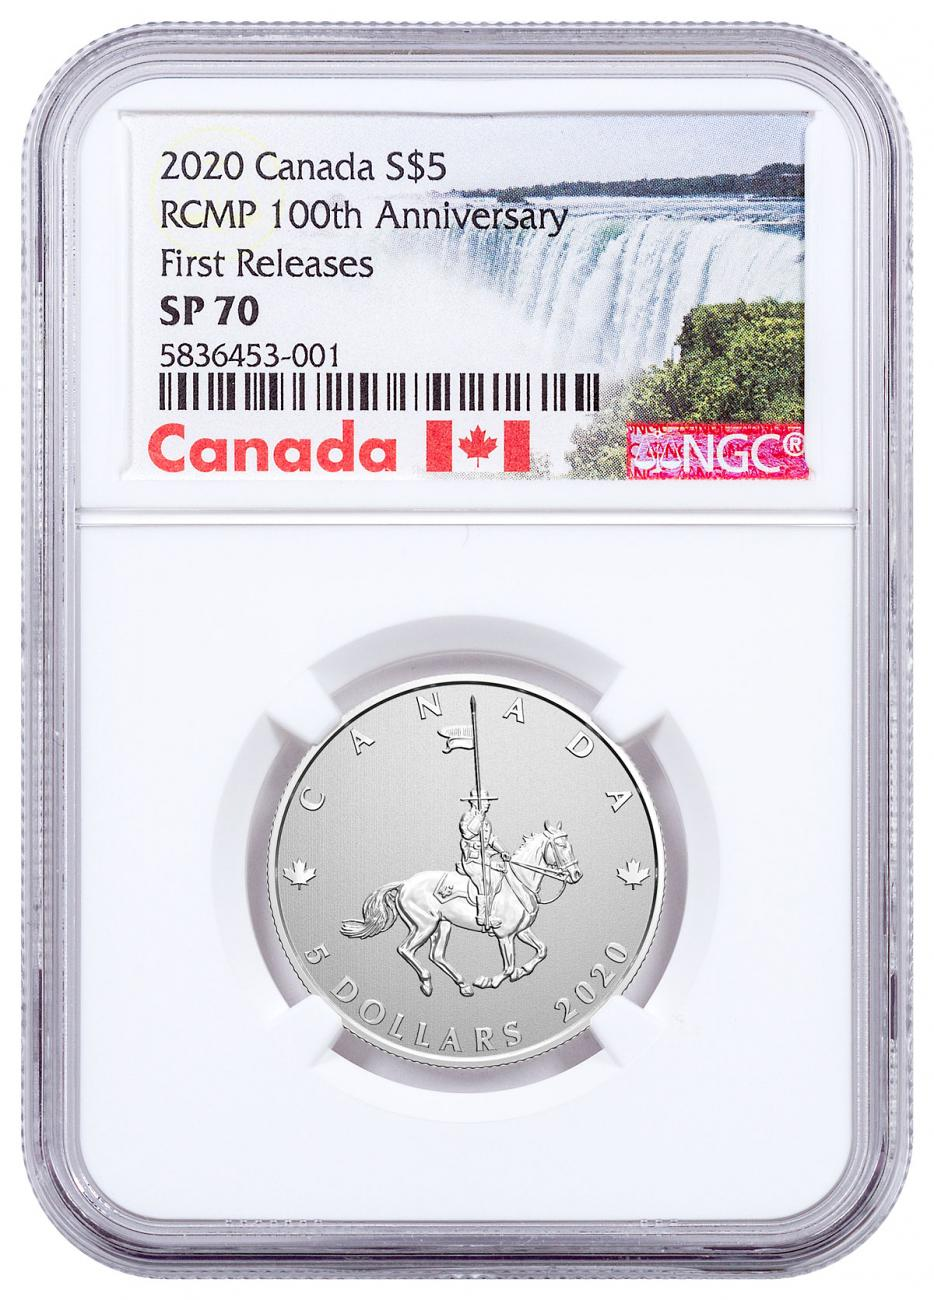 2020 Canada 100th Anniversary of RCMP 1/4 oz Silver Specimen $5 Coin NGC SP70 FR Exclusive Canada Label